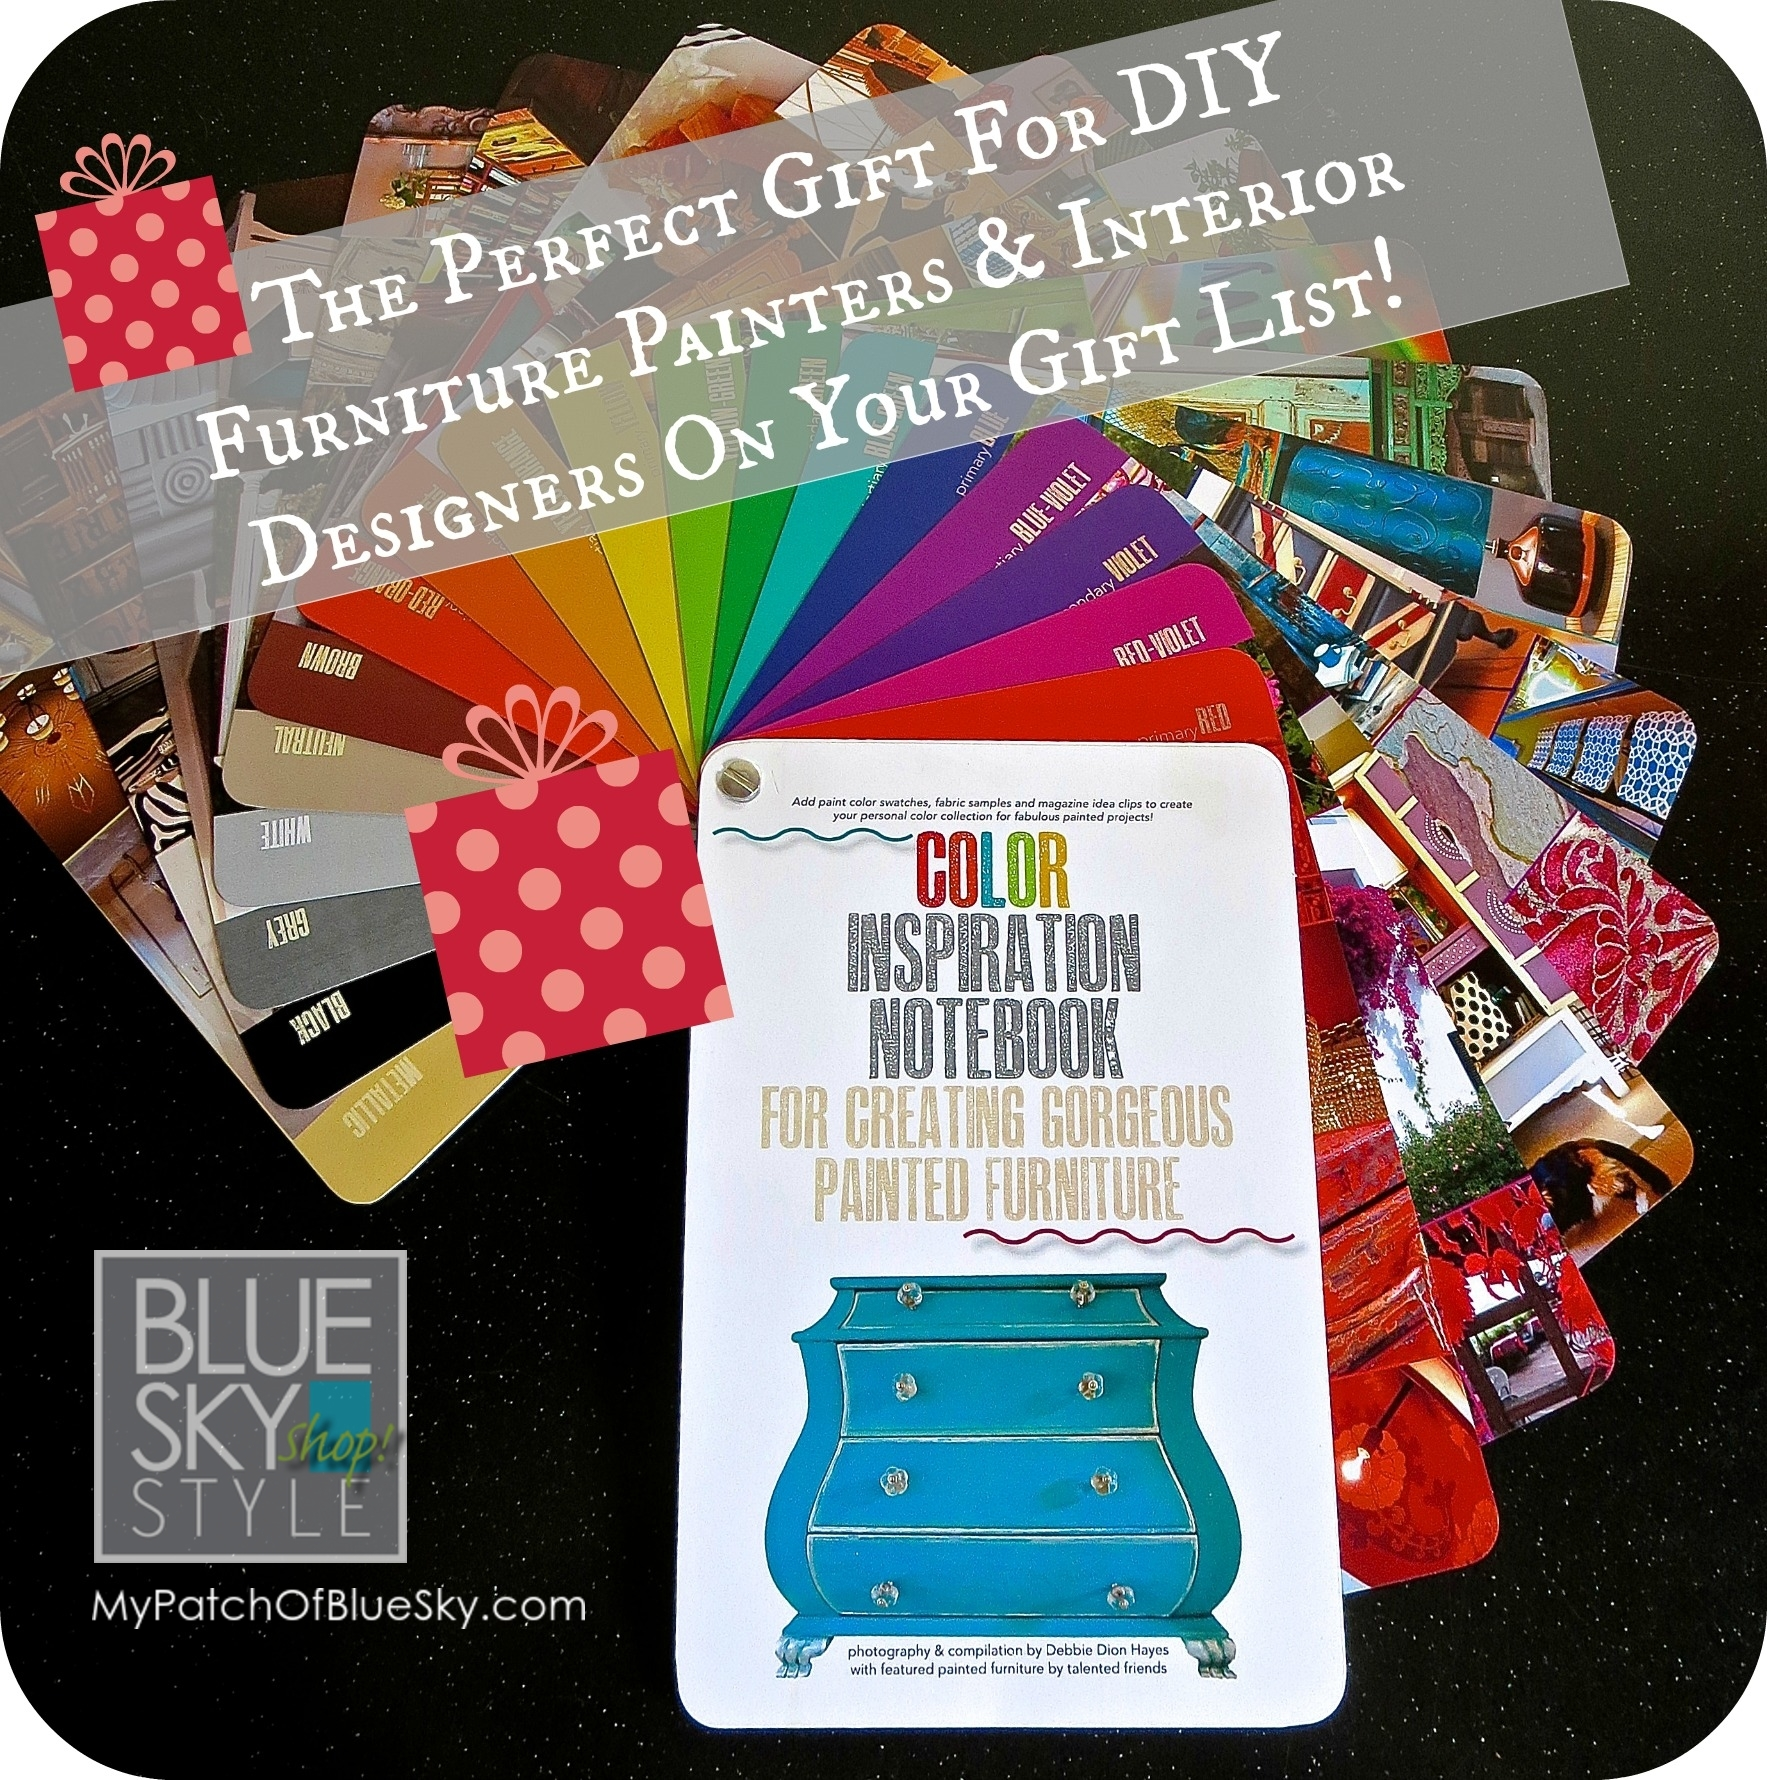 The Color Inspiration Notebook by Debbie Dion Hayes